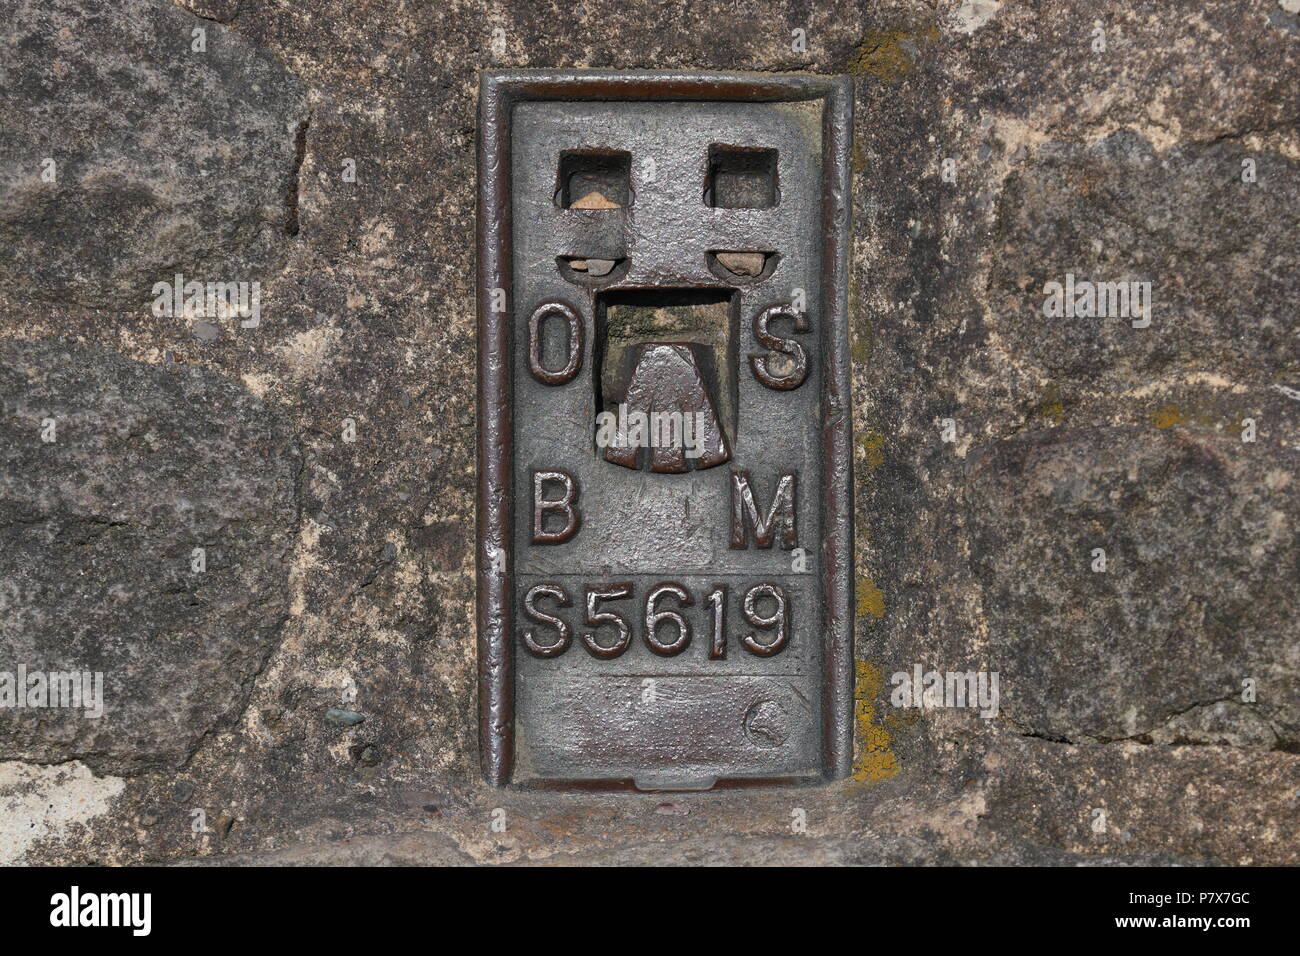 Ingleborough Trig Point which is on the summit of Ingleborough Mountain top. - Stock Image